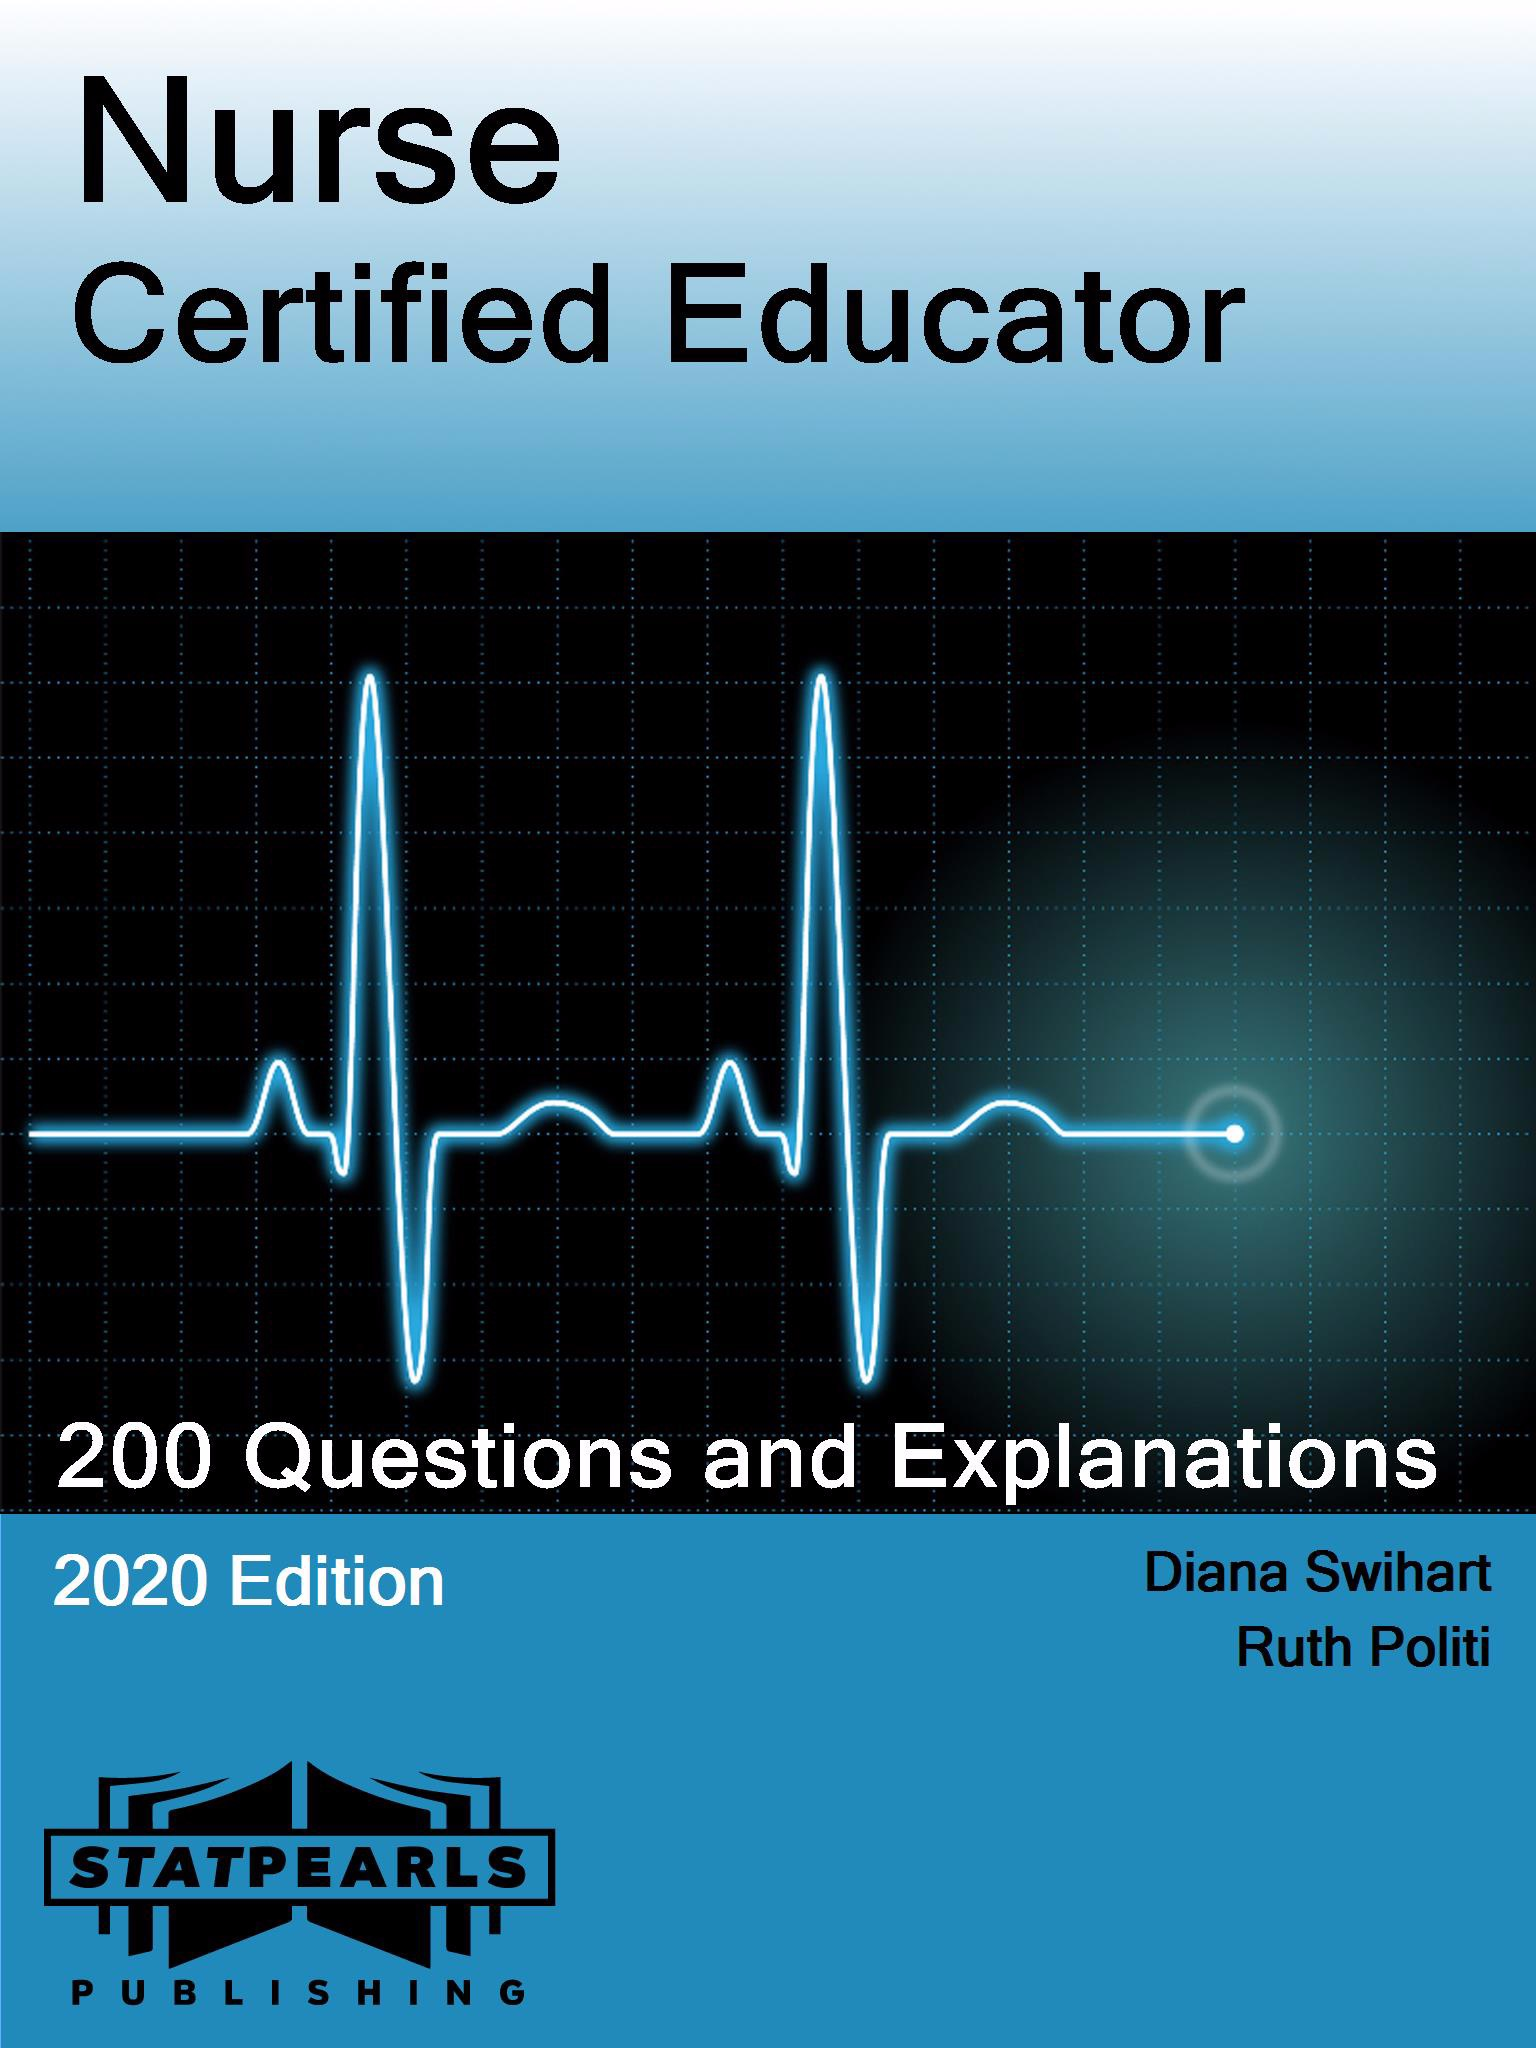 Nurse Certified Educator